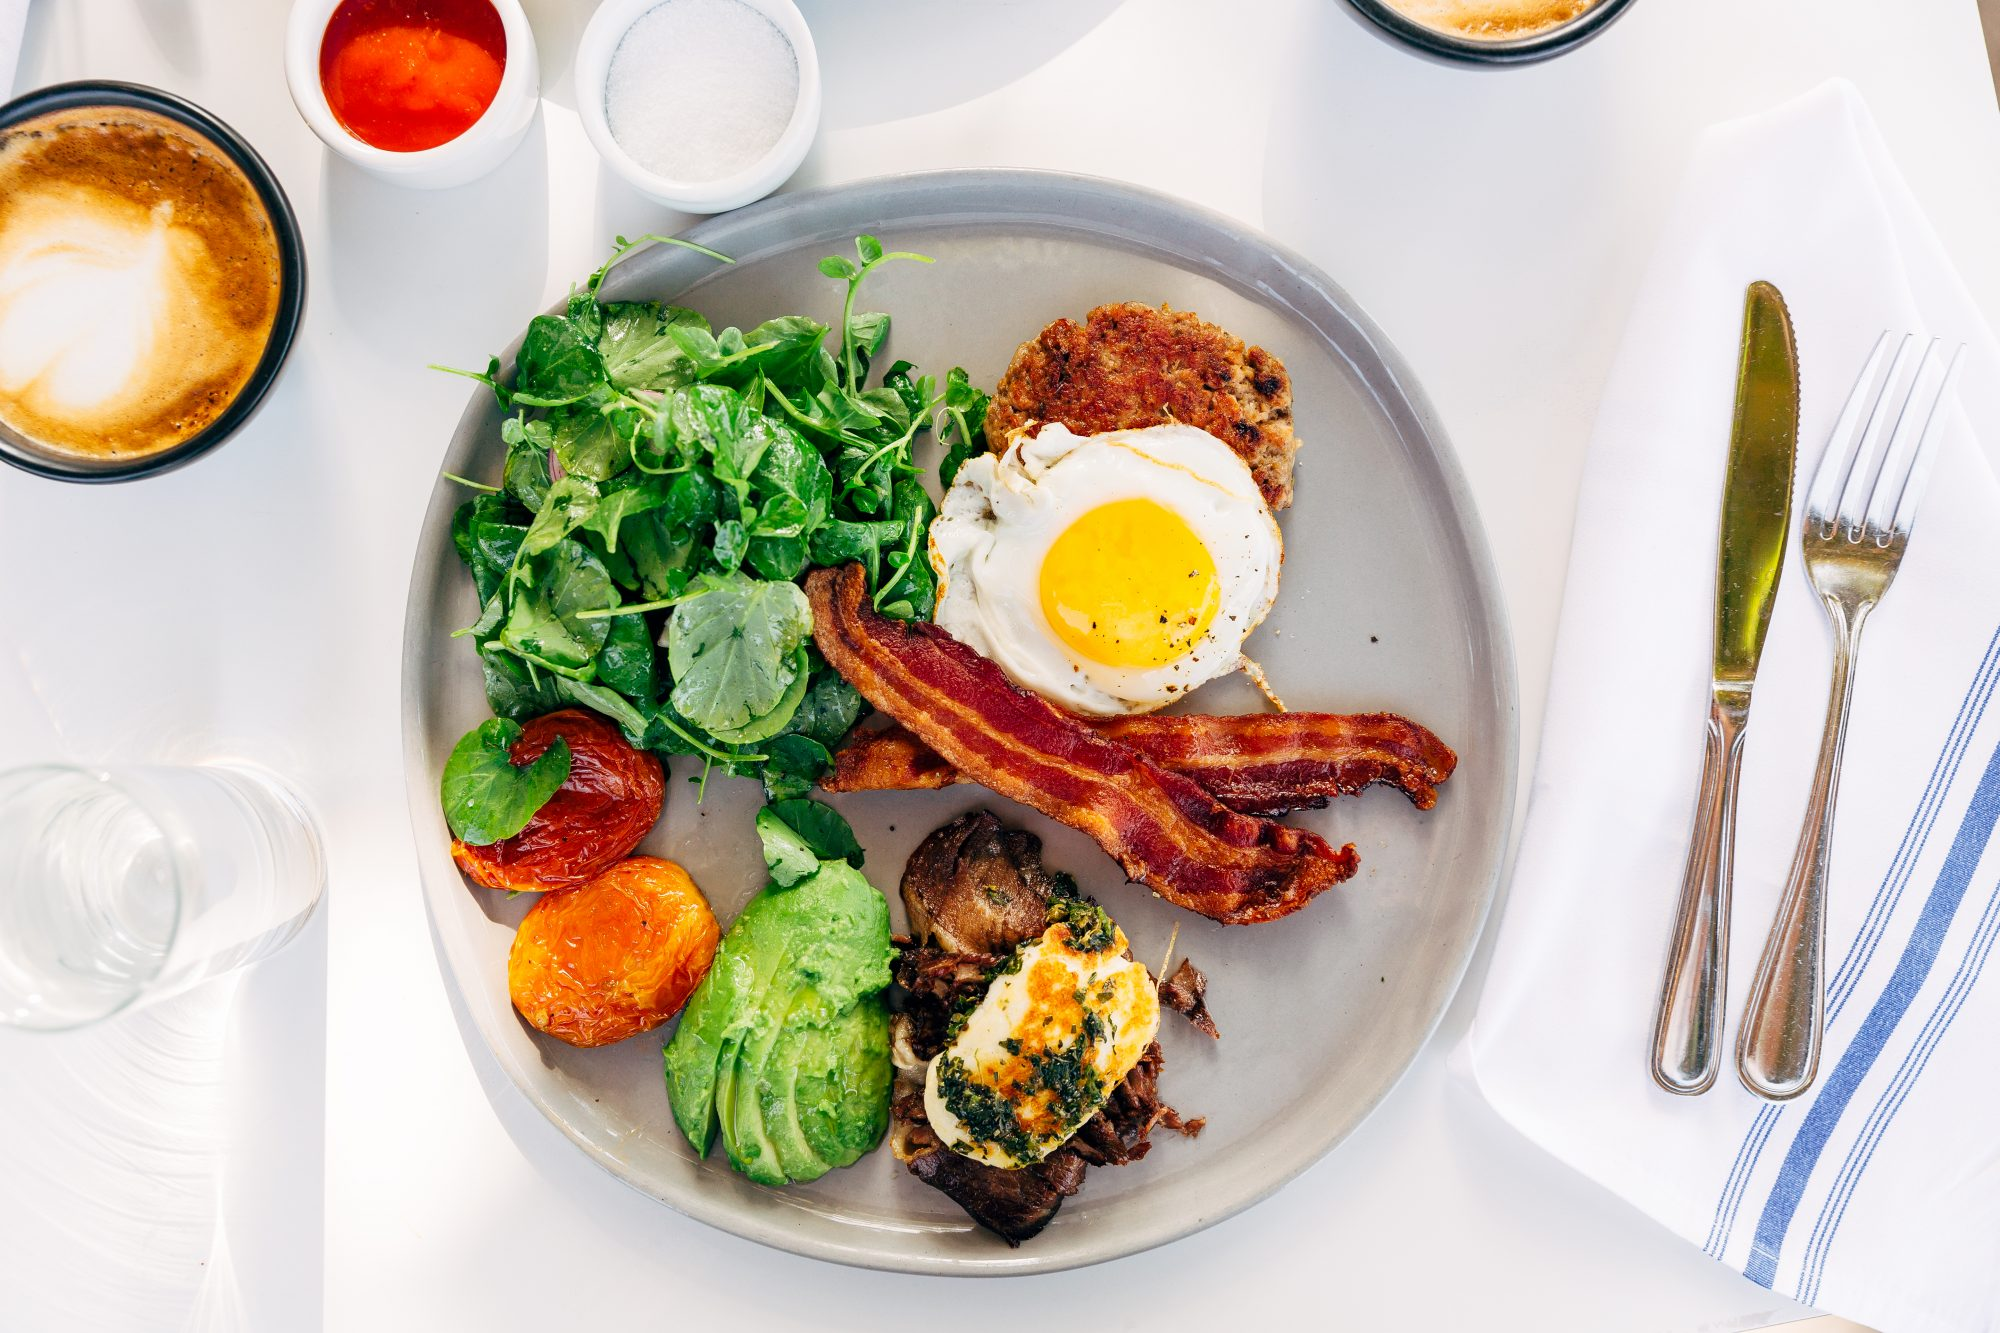 keto diet breakfast plate